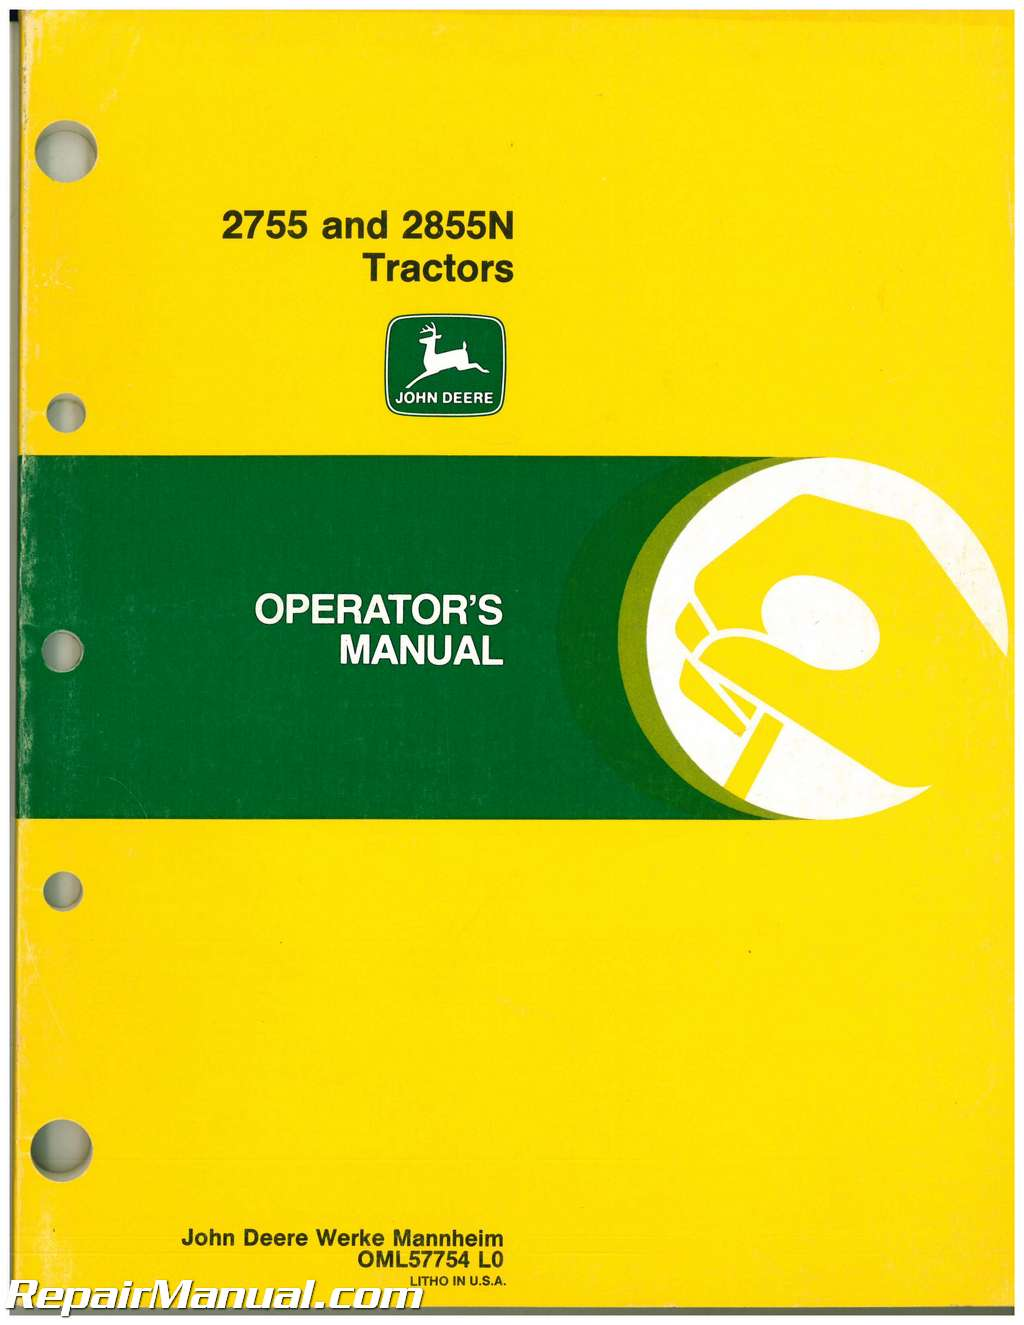 used john deere 2755 and 2855n tractors operators manual rh repairmanual com JD 2755 Craigslist JD 2755 Shifter Knobs